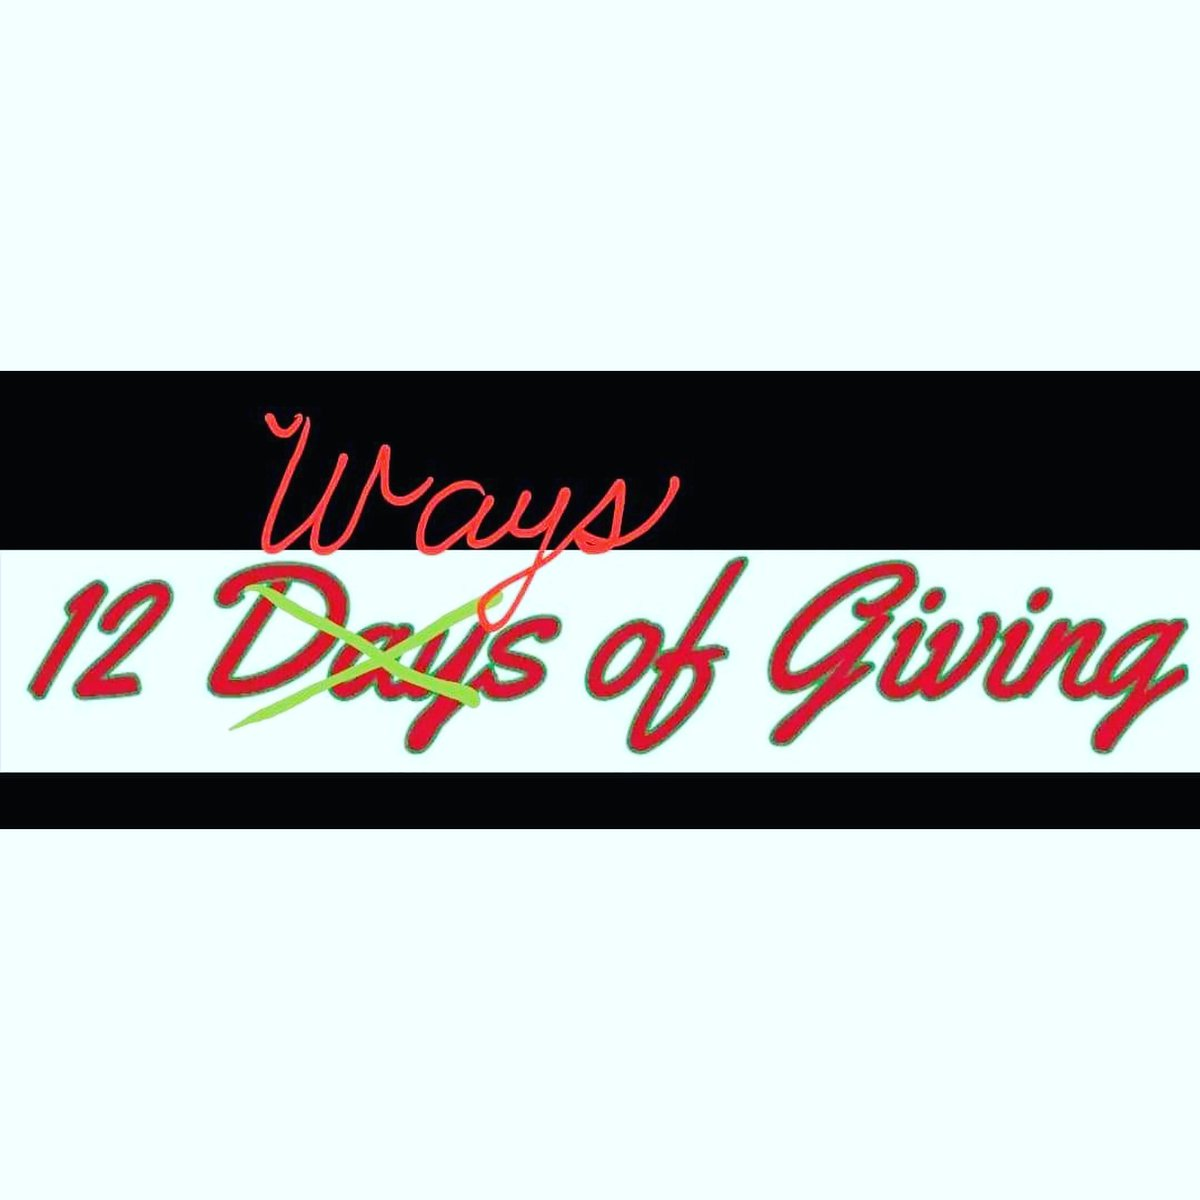 Thanks to Everyone who Donated, Shared and/or Helped #JoAnnBush's Organization #Generation2B ❤️, during Our Annual SIXTH Year of #TwelveWaysOfGiving, aka #12DaysOfGiving, for 2020! 👍  To #Donate and for the Full Story Please Visit:    #LosAngeles #CA